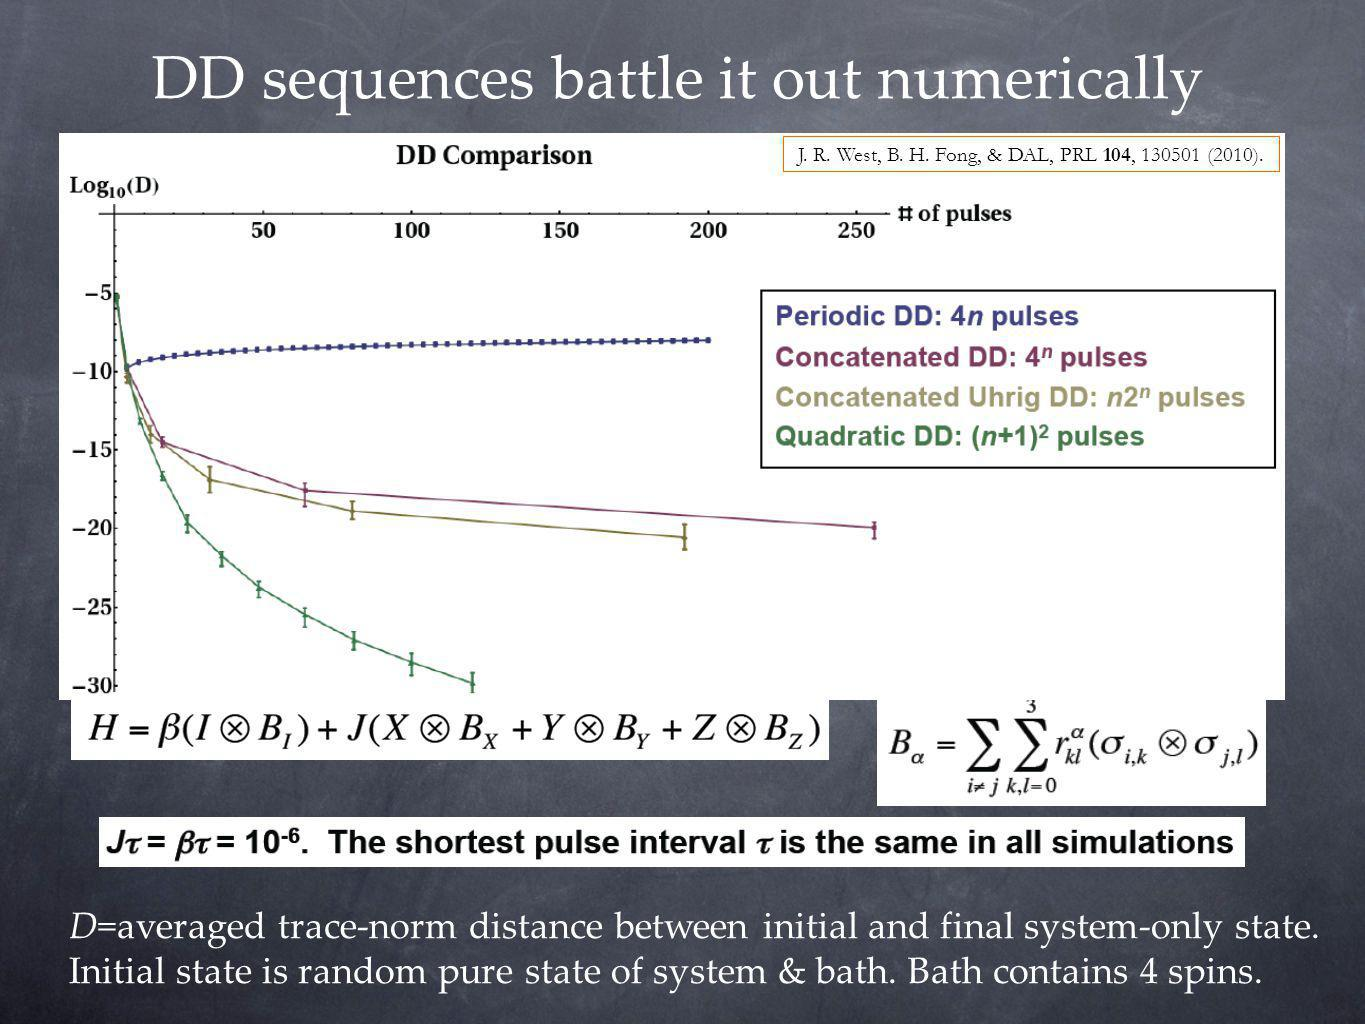 DD sequences battle it out numerically